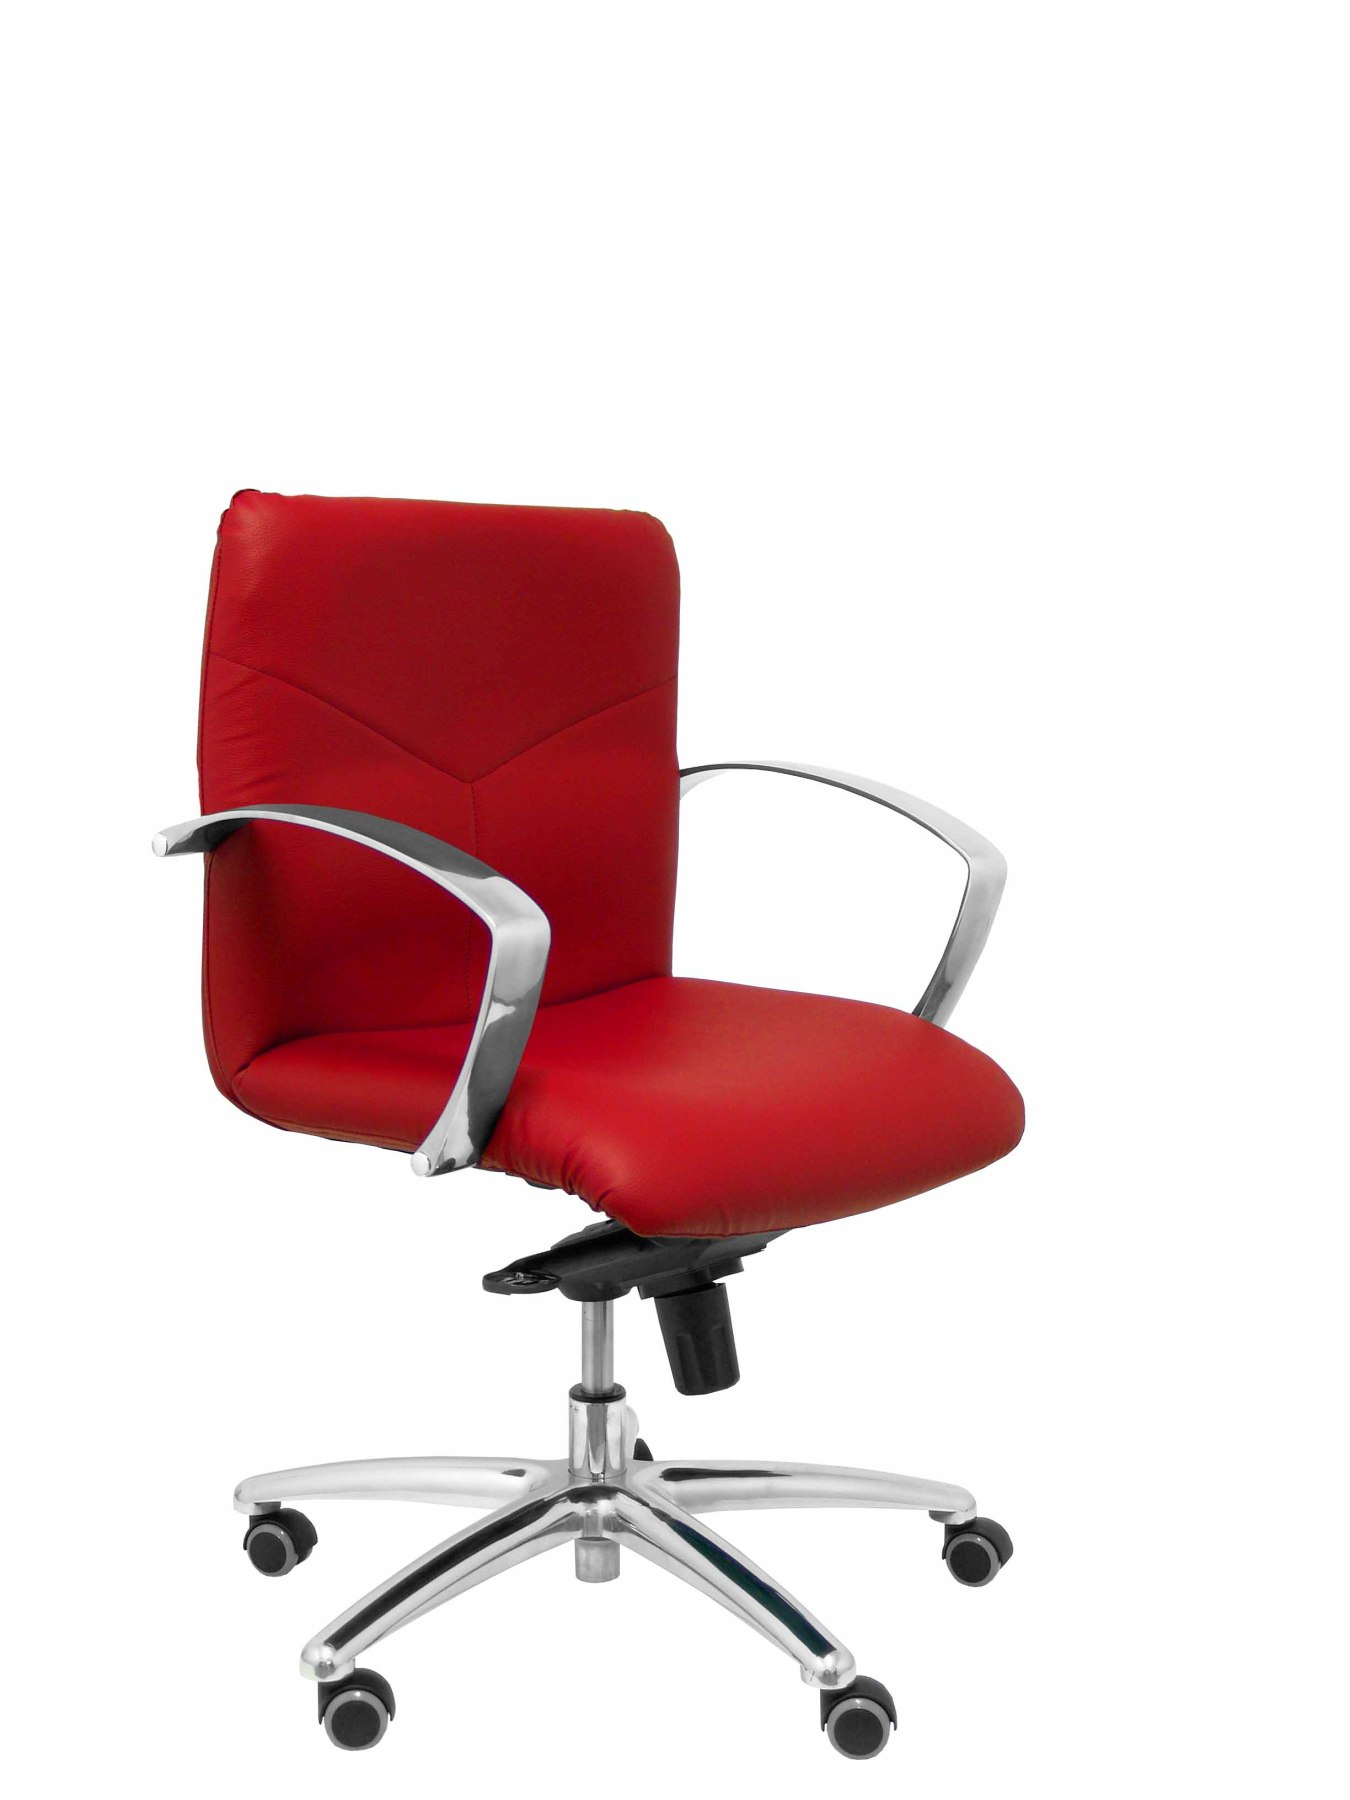 Armchair Reception Ergonomic With Mechanism Rocker And Height Adjustable Seat And Back Upholstered In Similp